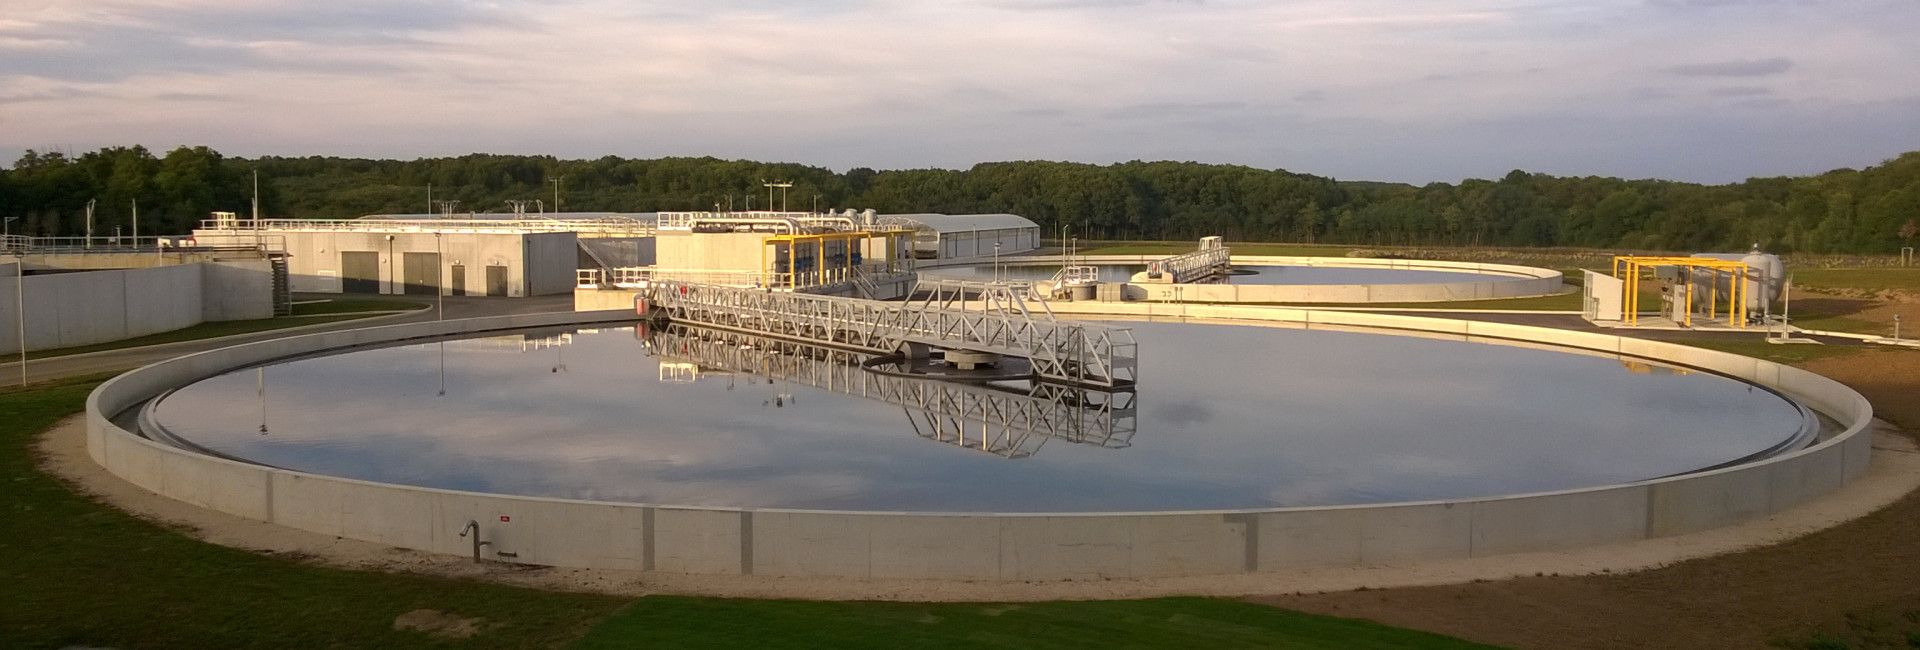 Chartres wwtp